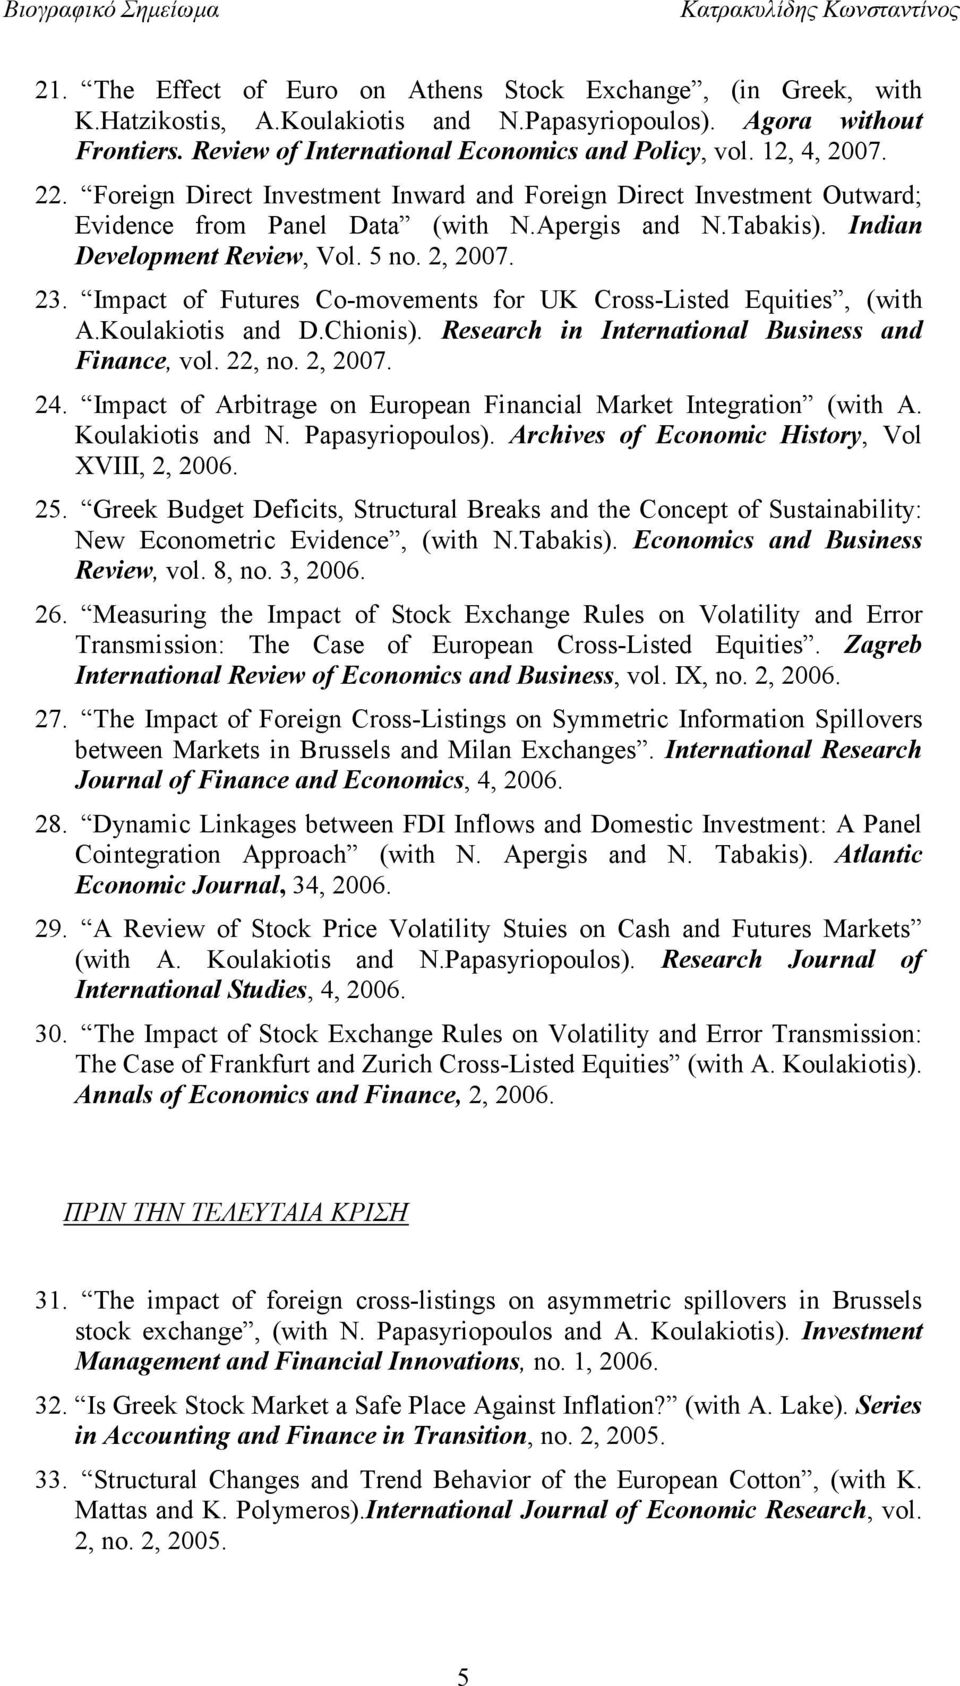 Impact of Futures Co-movements for UK Cross-Listed Equities, (with A.Koulakiotis and D.Chionis). Research in International Business and Finance, vol. 22, no. 2, 2007. 24.